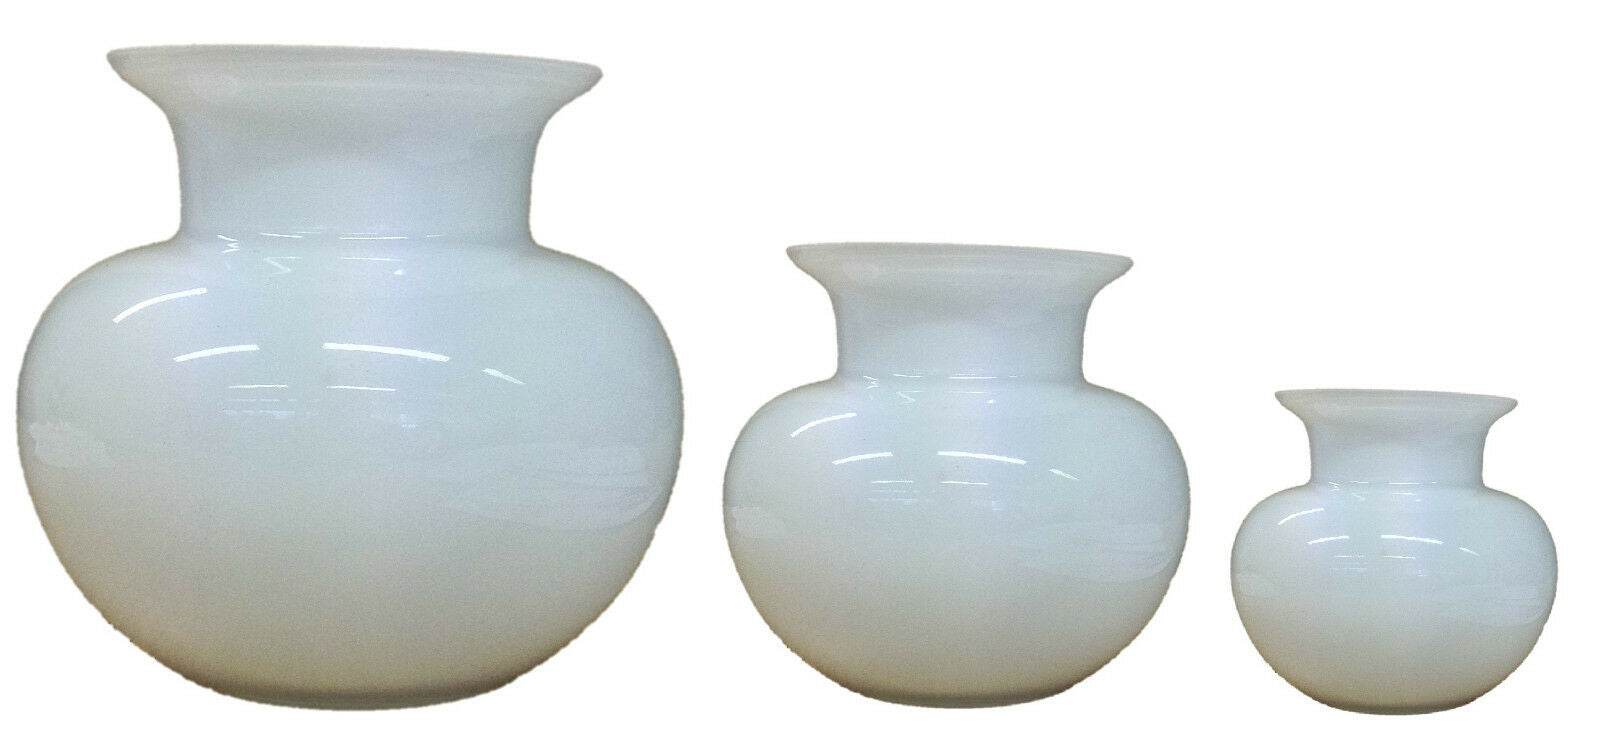 Alicija Handmade Glass Decorative White Rounded Flower Vase